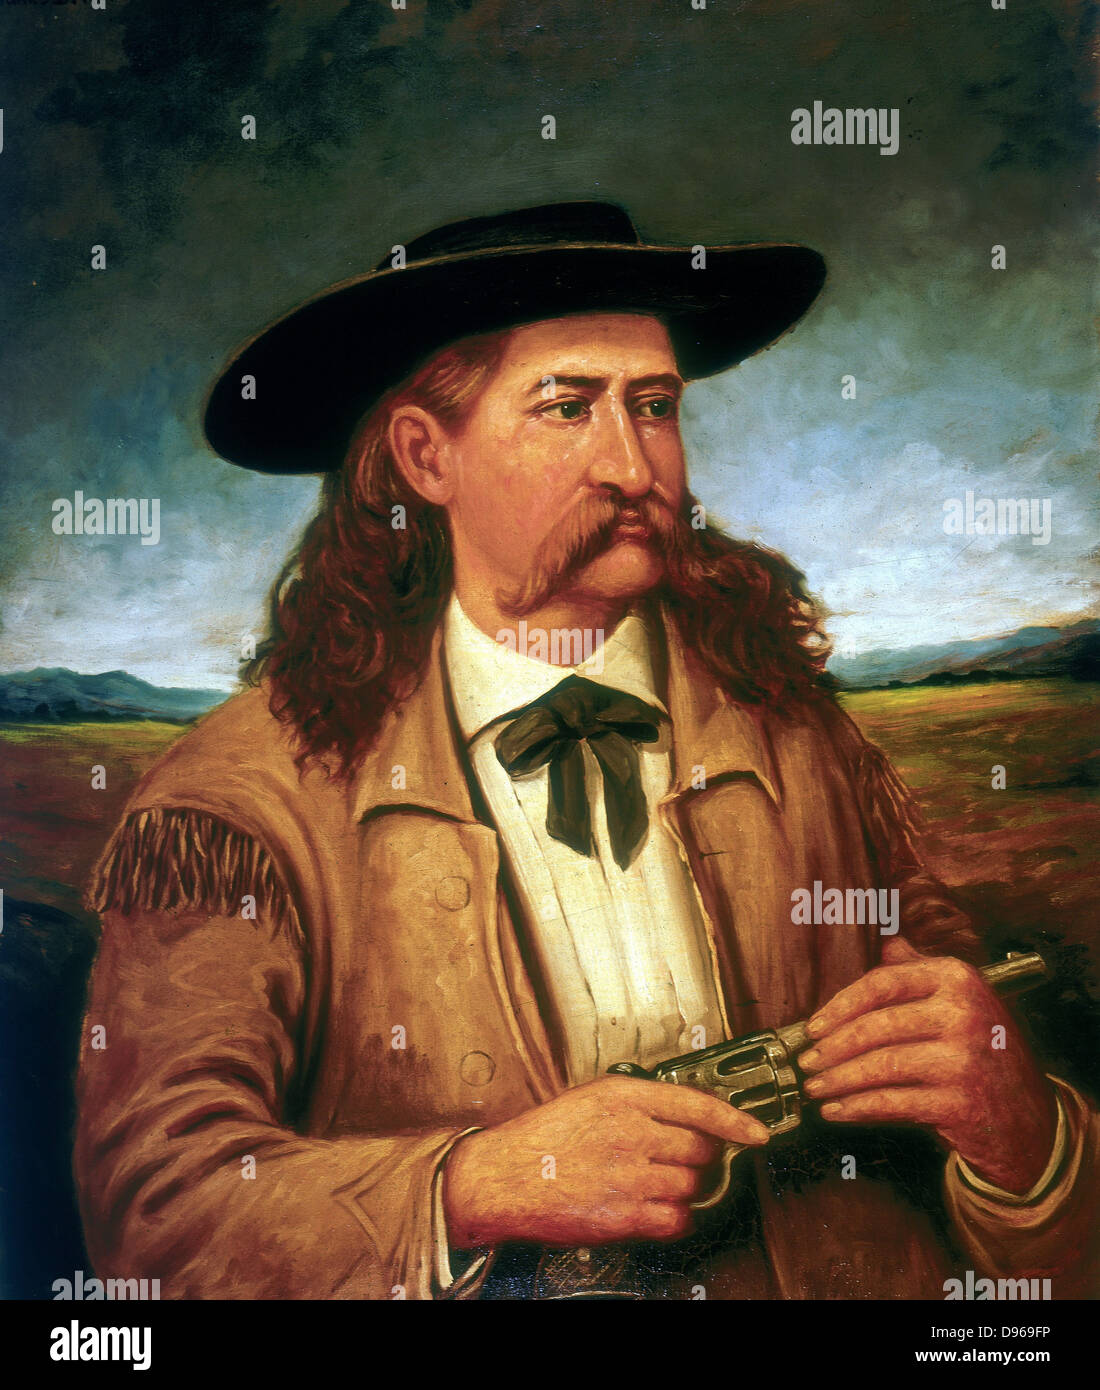 James Butler 'Wild Bill' Hickock (1837-1876) American scout and lawman. Painting from life by Henry H Cross - Stock Image